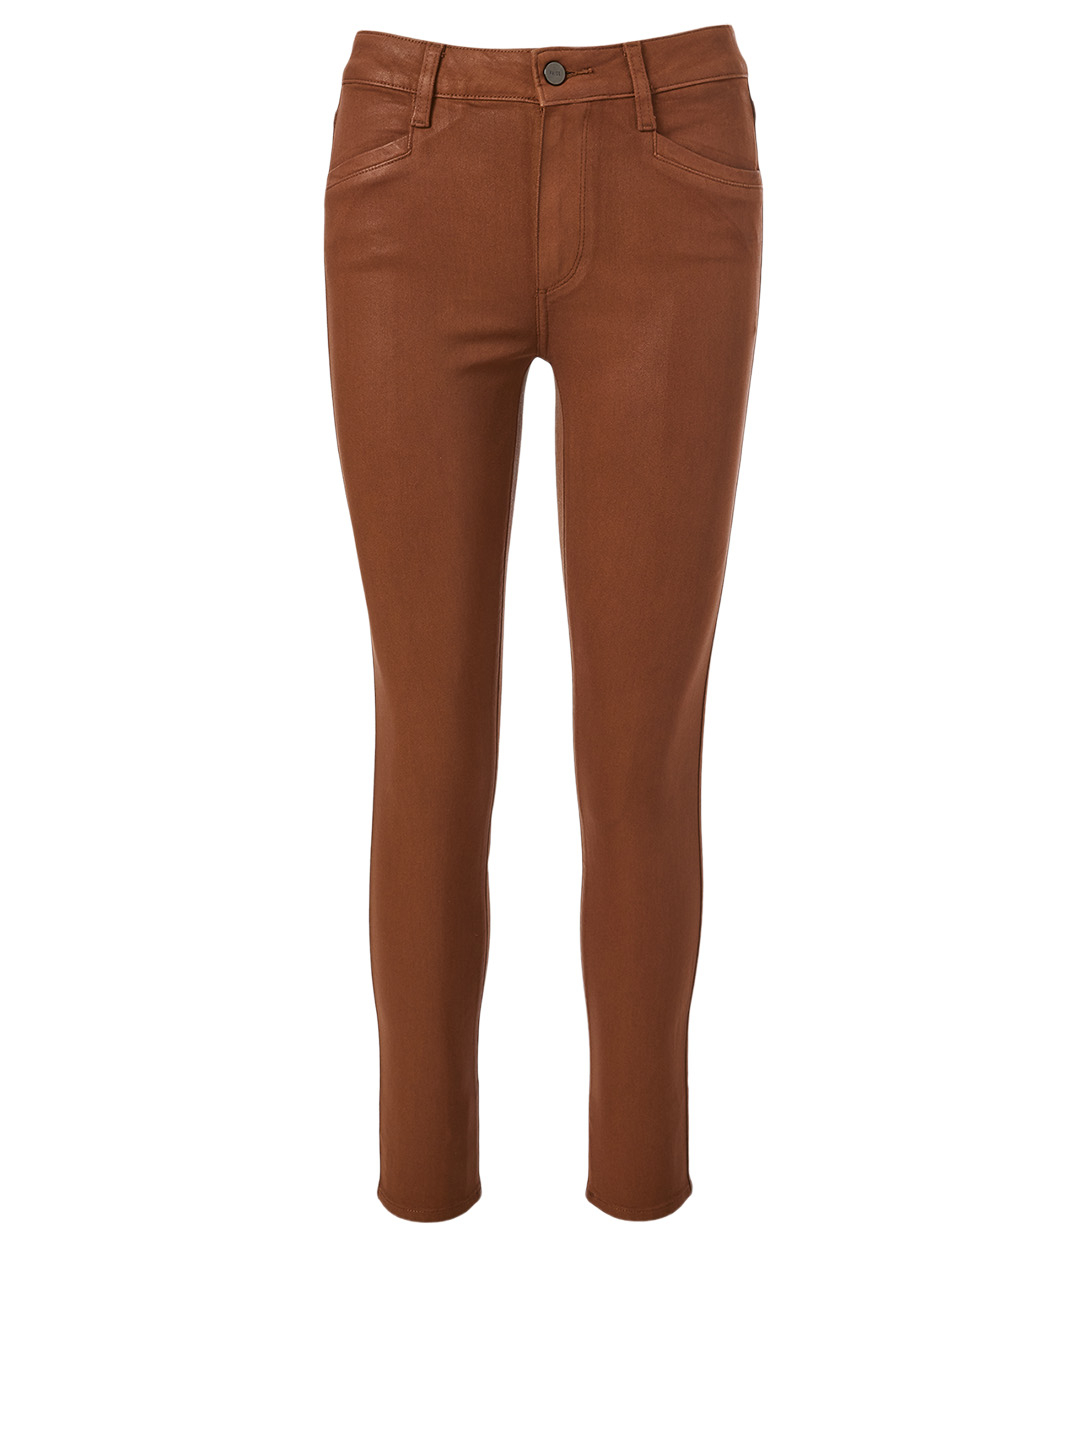 PAIGE Hoxton Coated Ankle Jeans Women's Brown